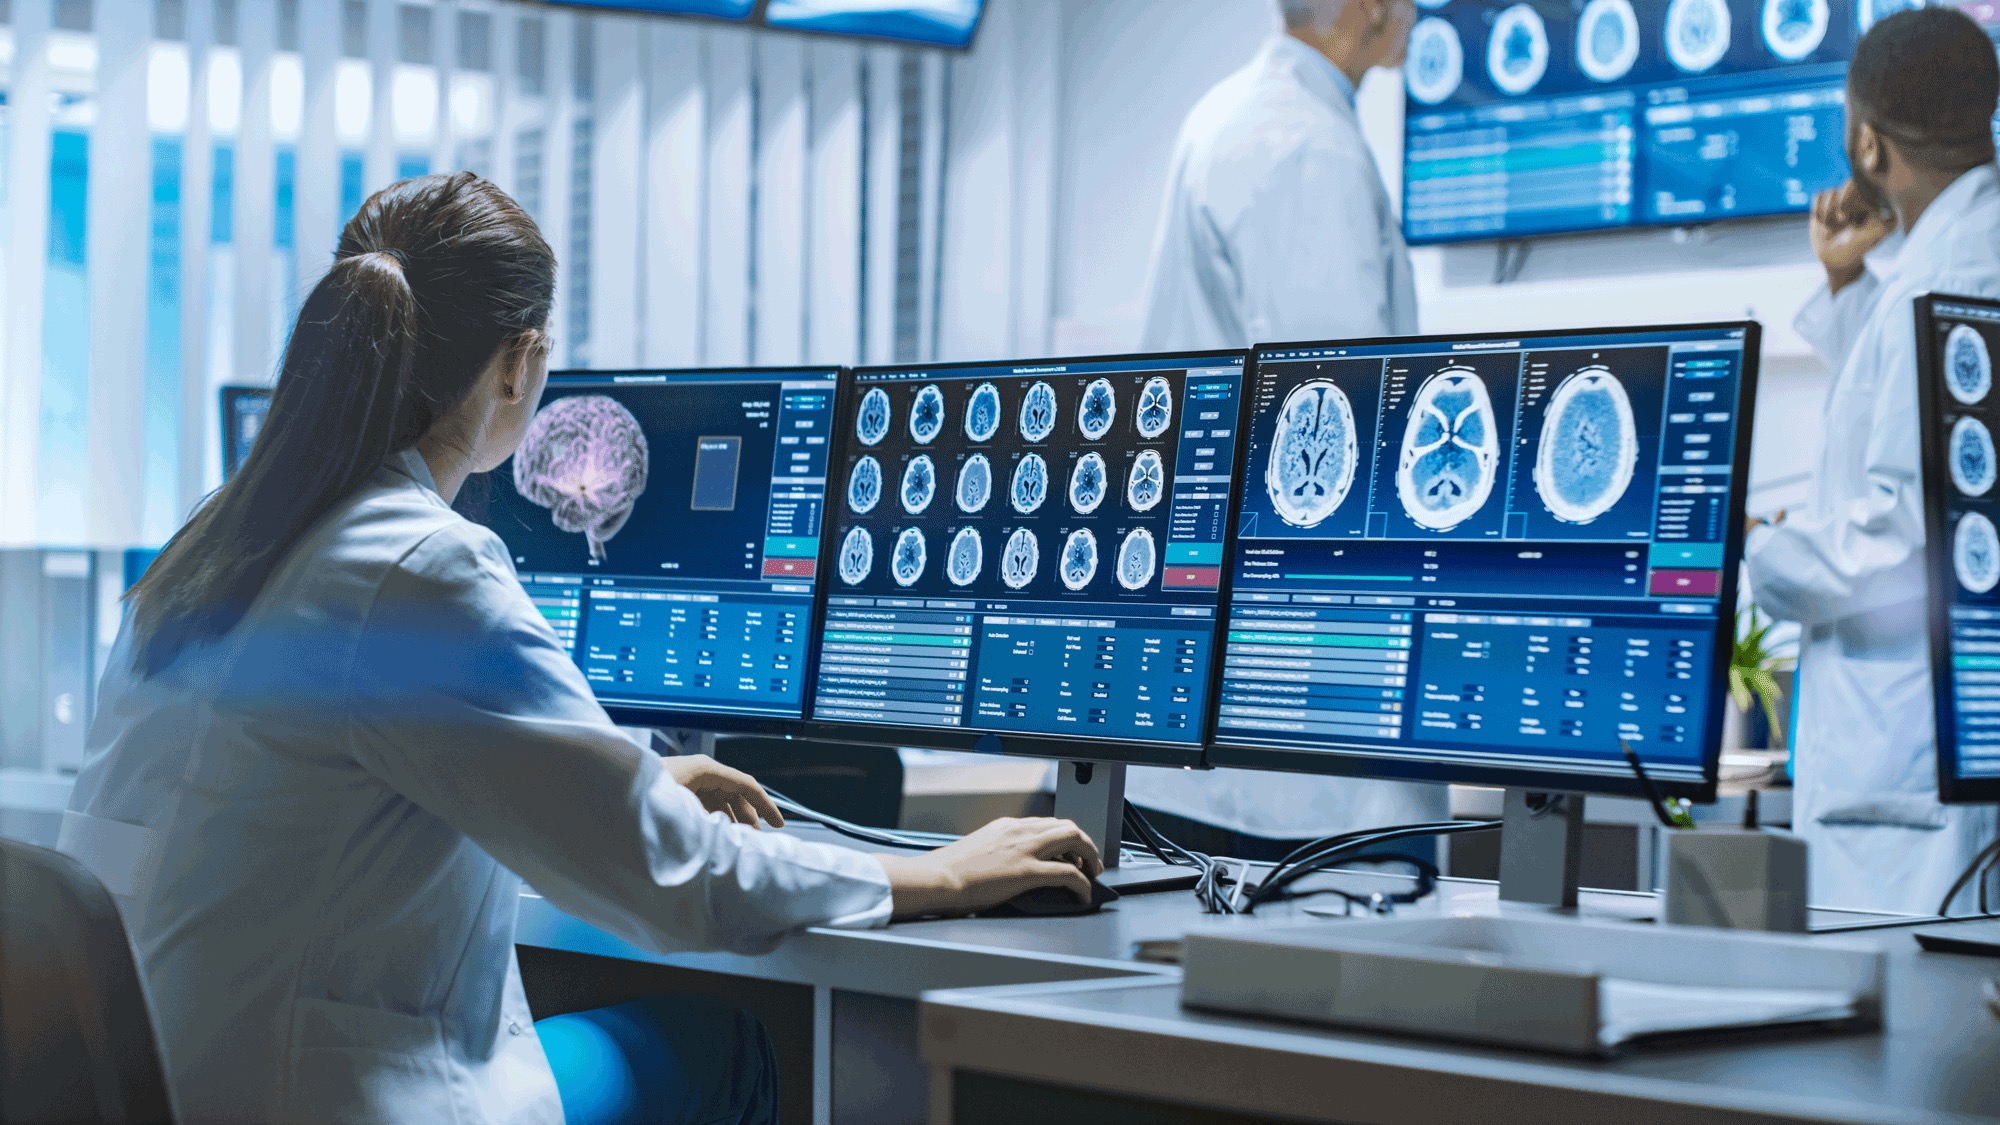 Radiologist Reviewing Shared PACS Data Across Multiple Screens